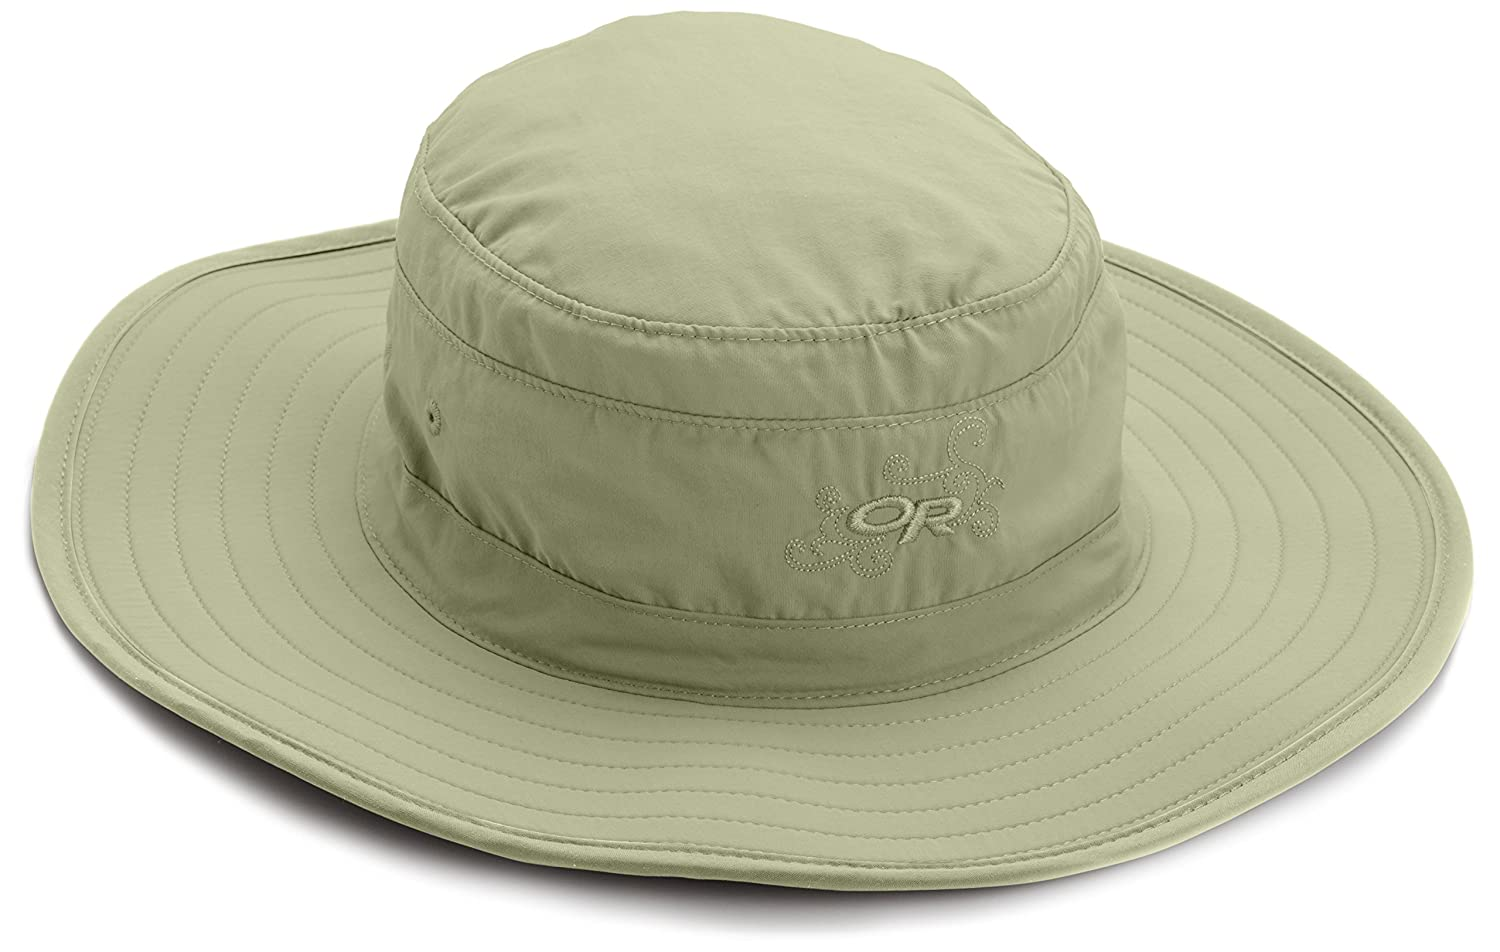 e57a49242c8618 Outdoor Research - Solar Roller Hat, Color: Amazon.co.uk: Sports & Outdoors